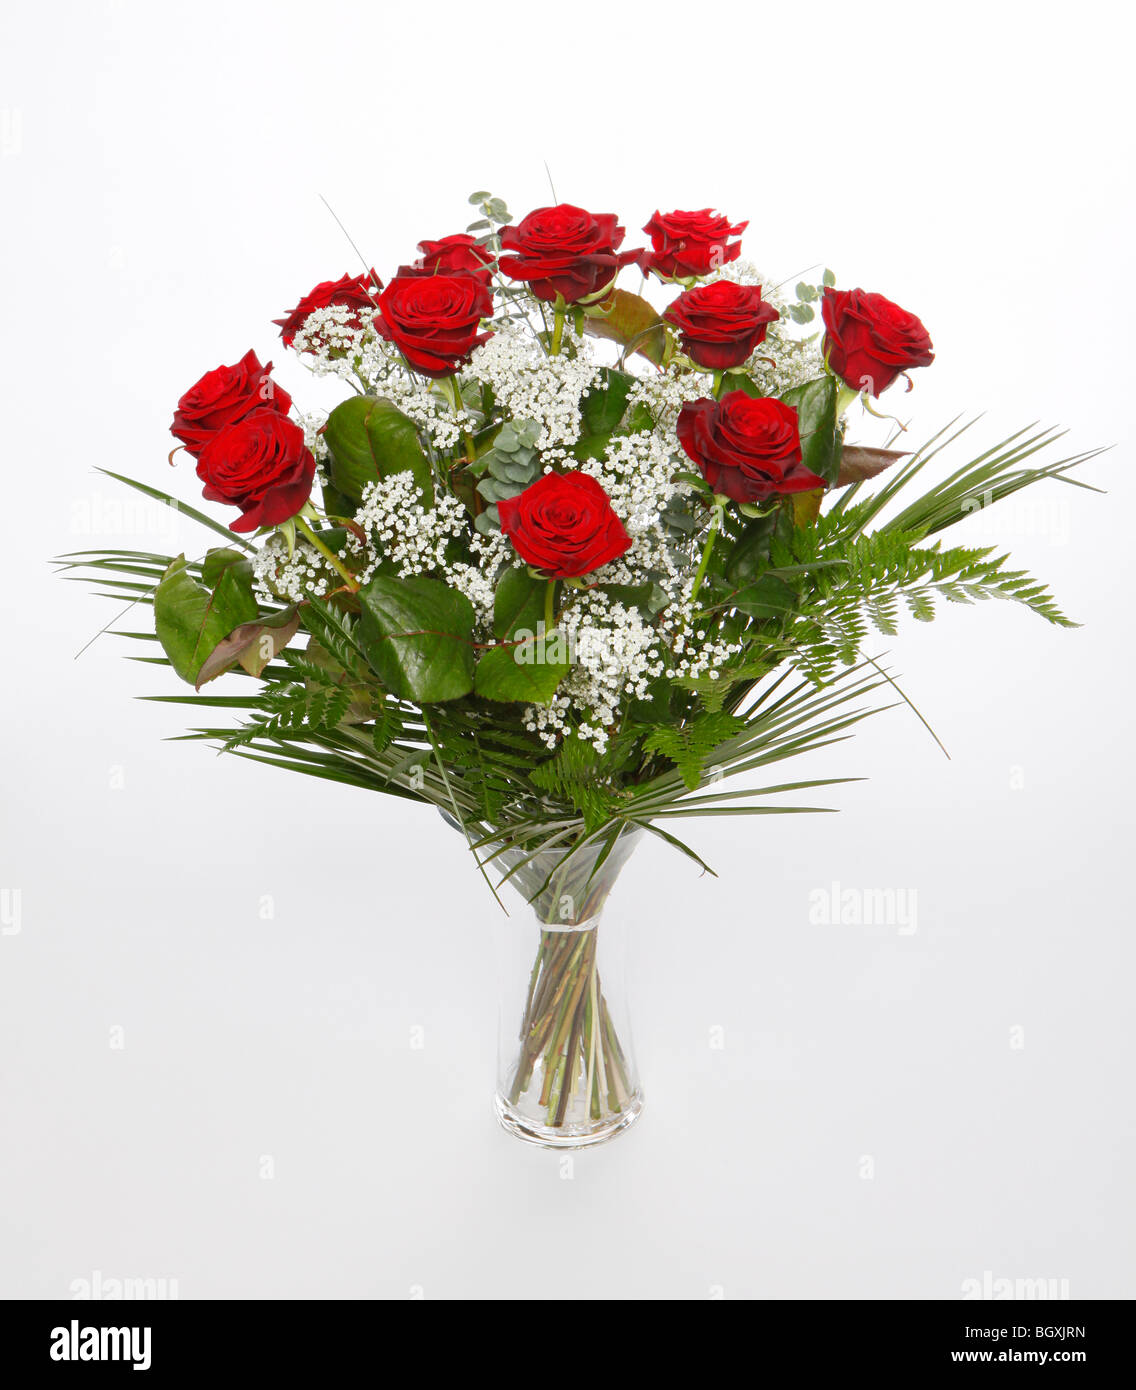 A dozen red roses for Valentines Day. Flowers on a white background - Stock Image